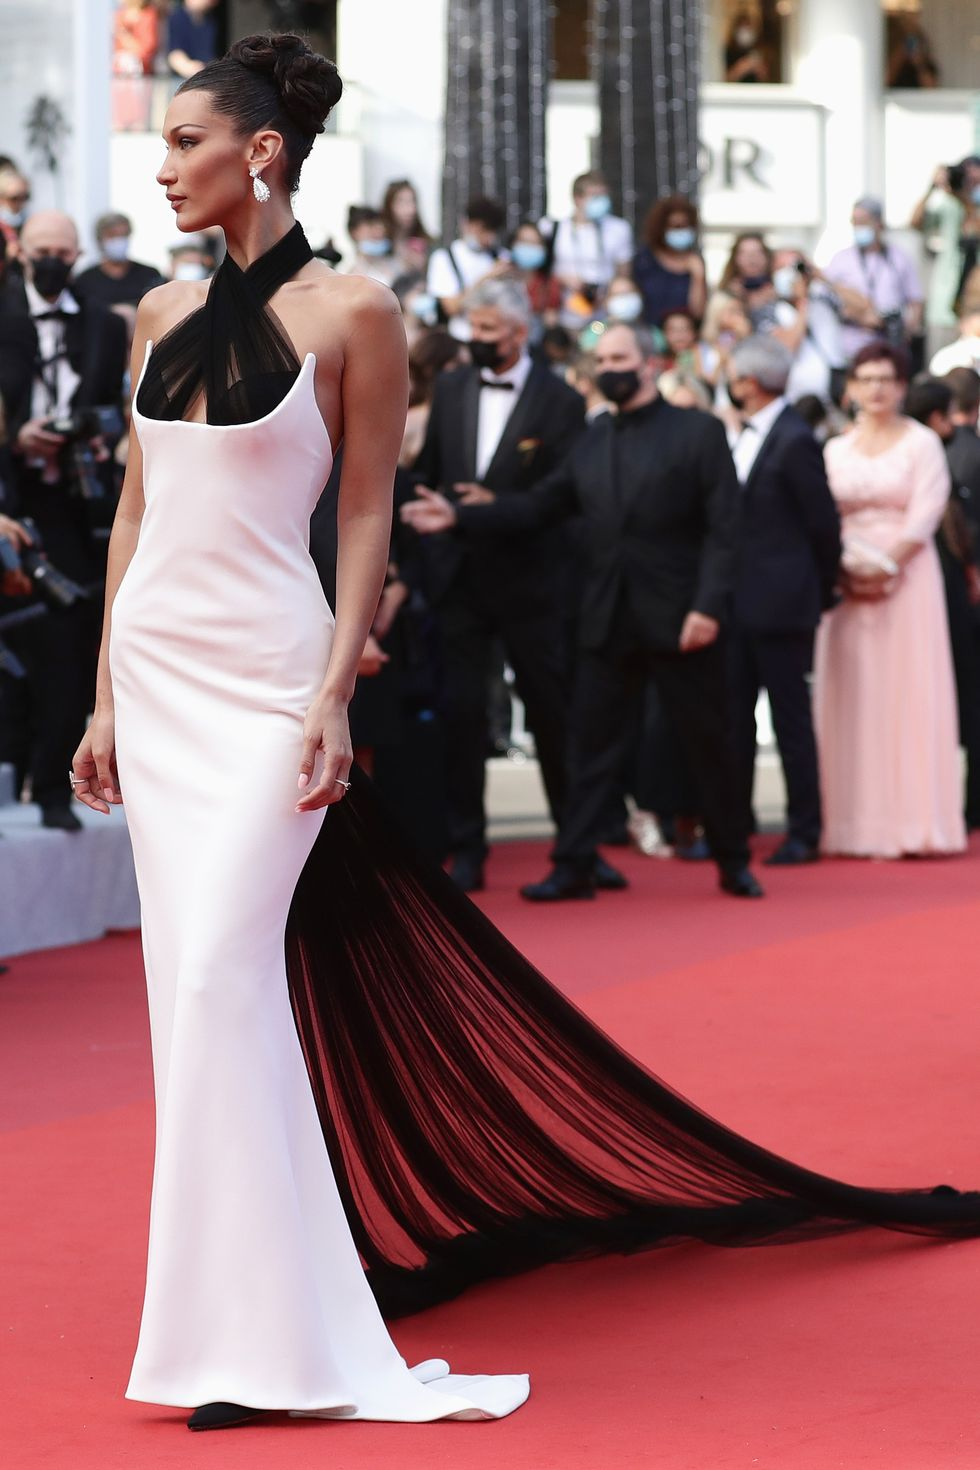 Bella Hadid Bella Hadid made a statement in her classic high-neck Jane Paul gown, which included a long sheer train, and the model completed her look on the red carpet with Chopard jewels.